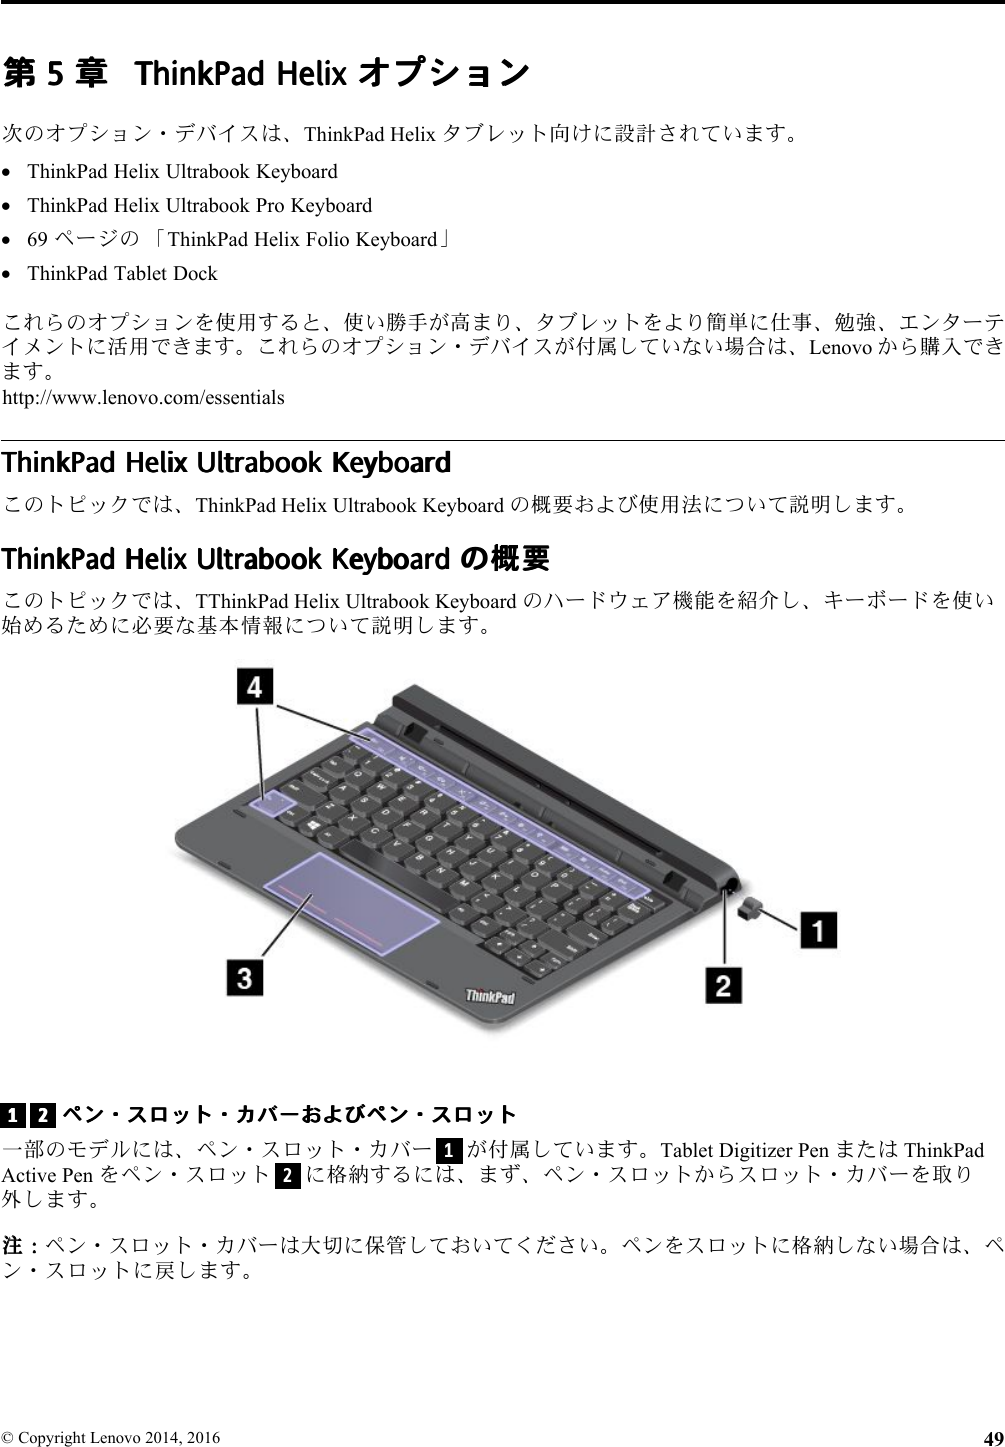 Lenovo Helix2 Ug Ja User Manual ユーザーガイド Think Pad Helix